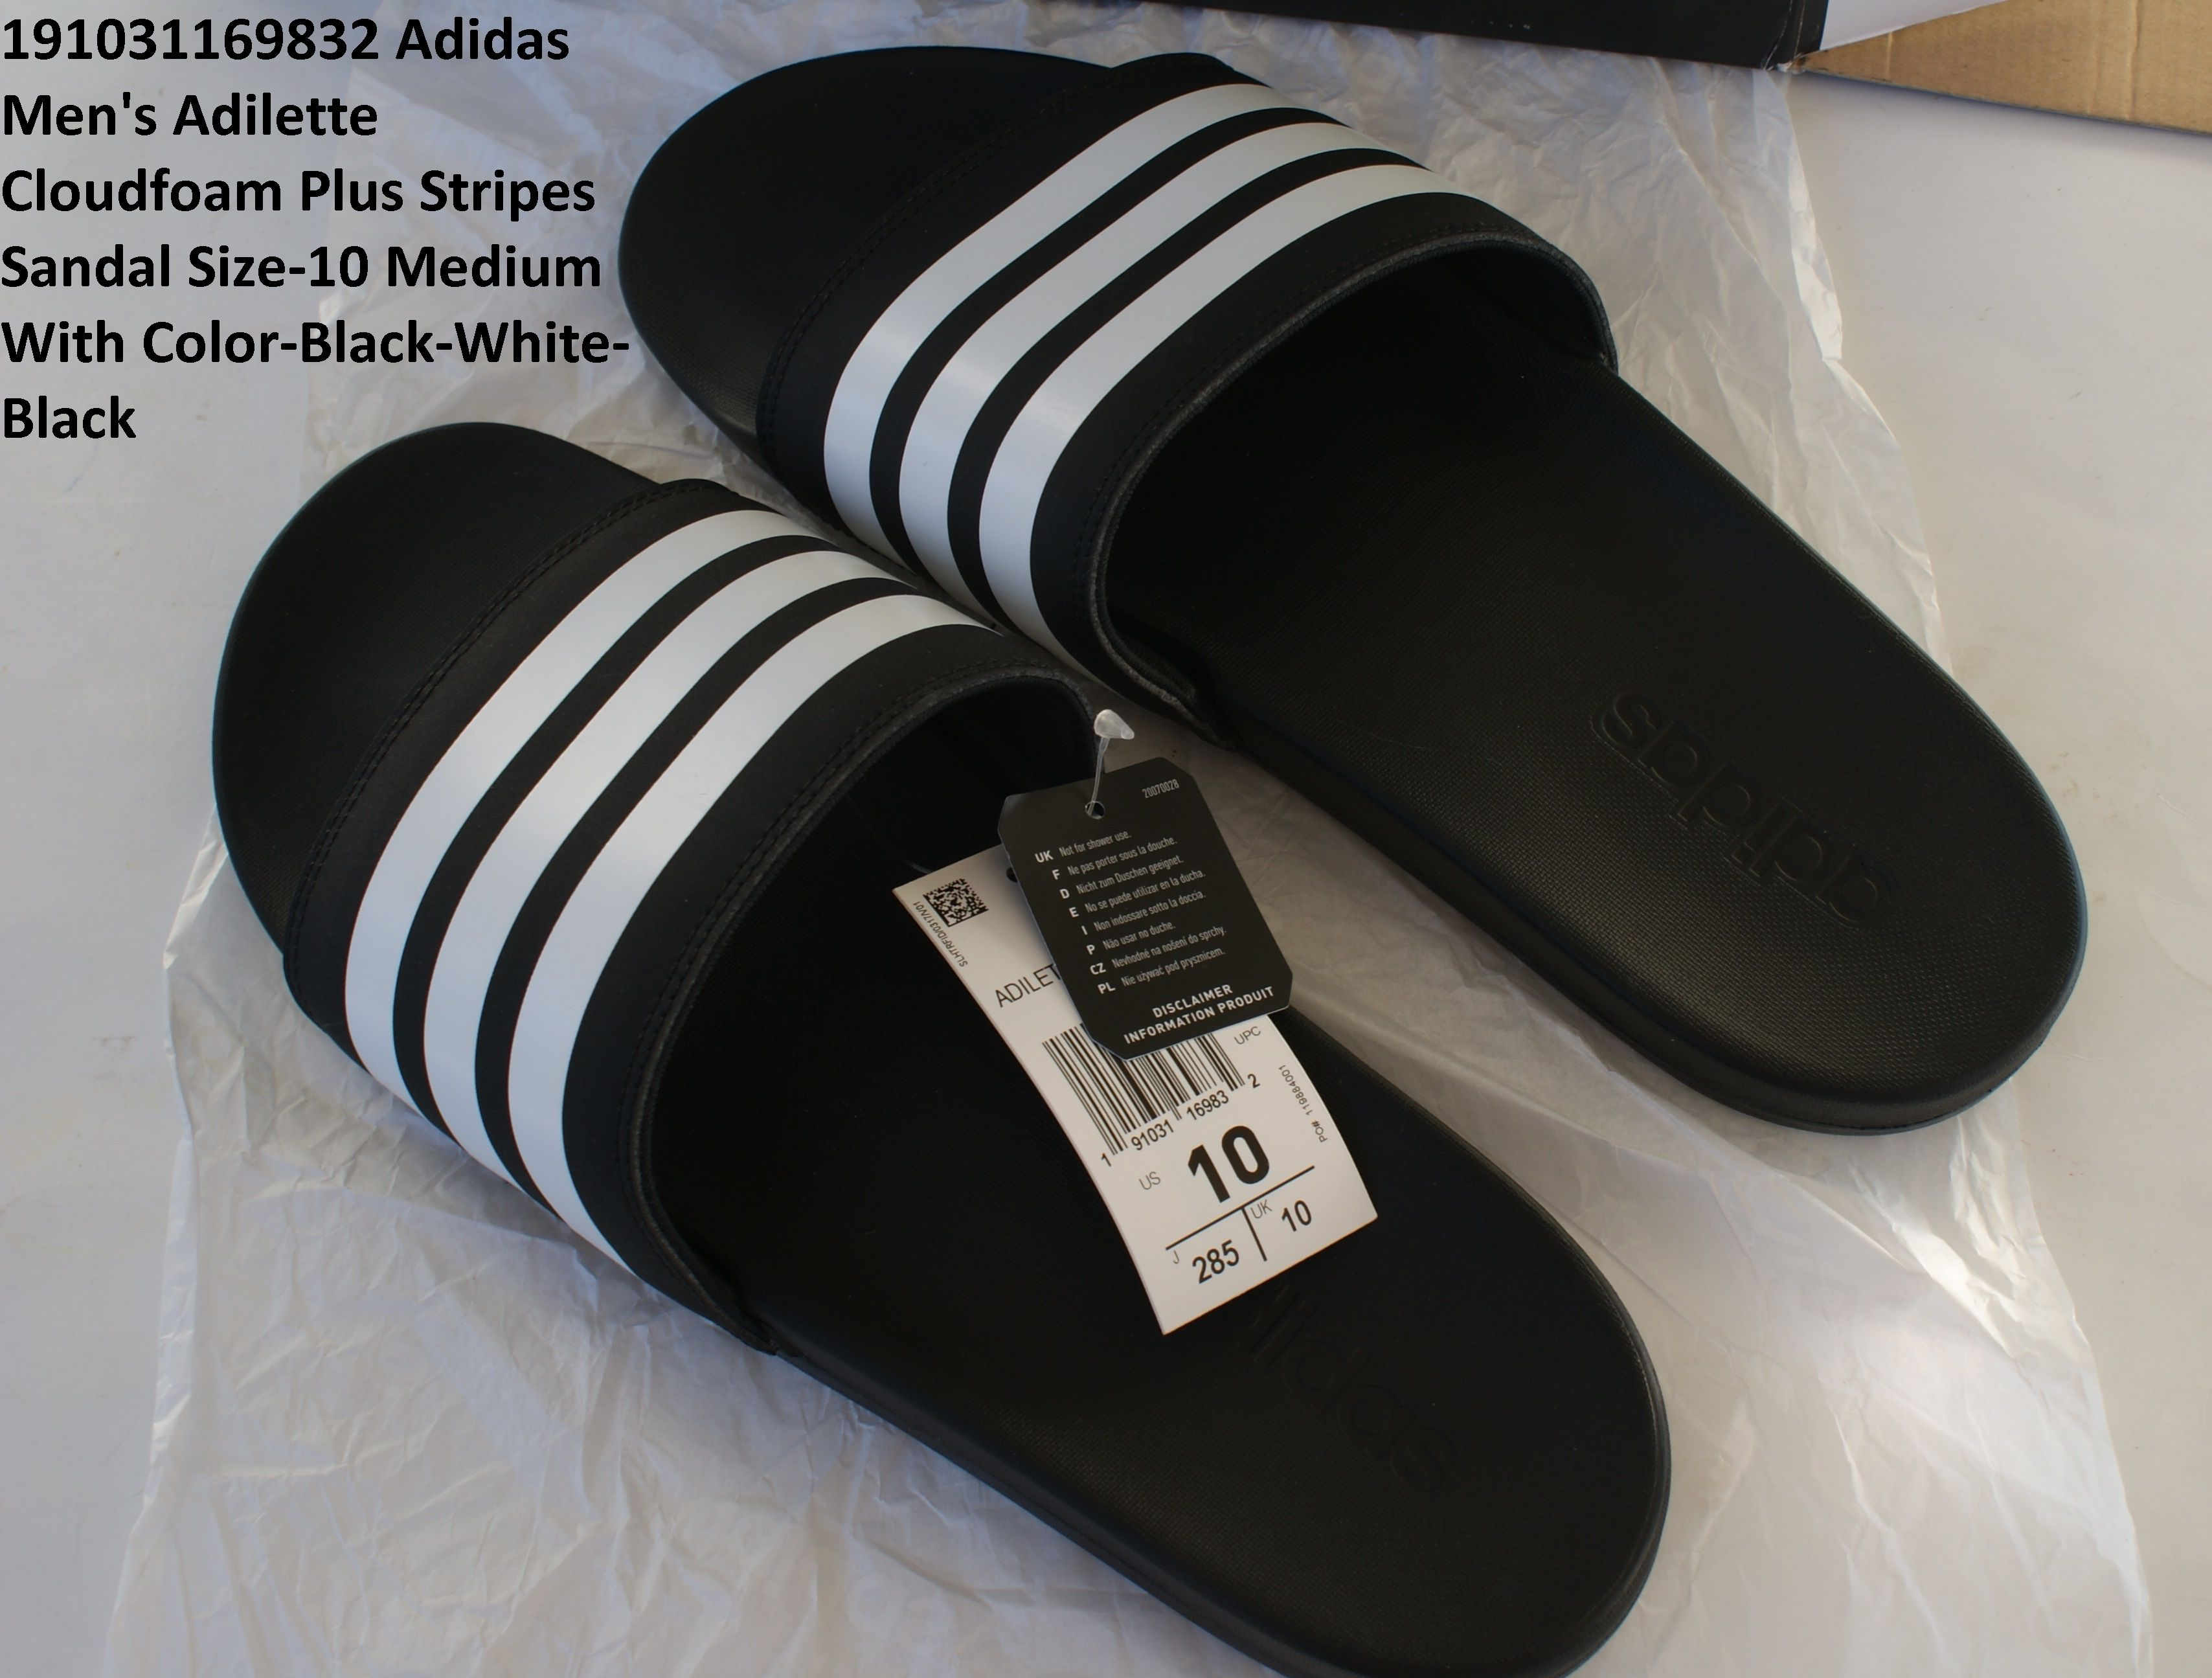 7072ac669 Description  Living up to its name the adidas Men s Adilette Cloudfoam Plus  Stripes Sandal will have you walking on clouds. Slip into pillow-soft  comfort ...